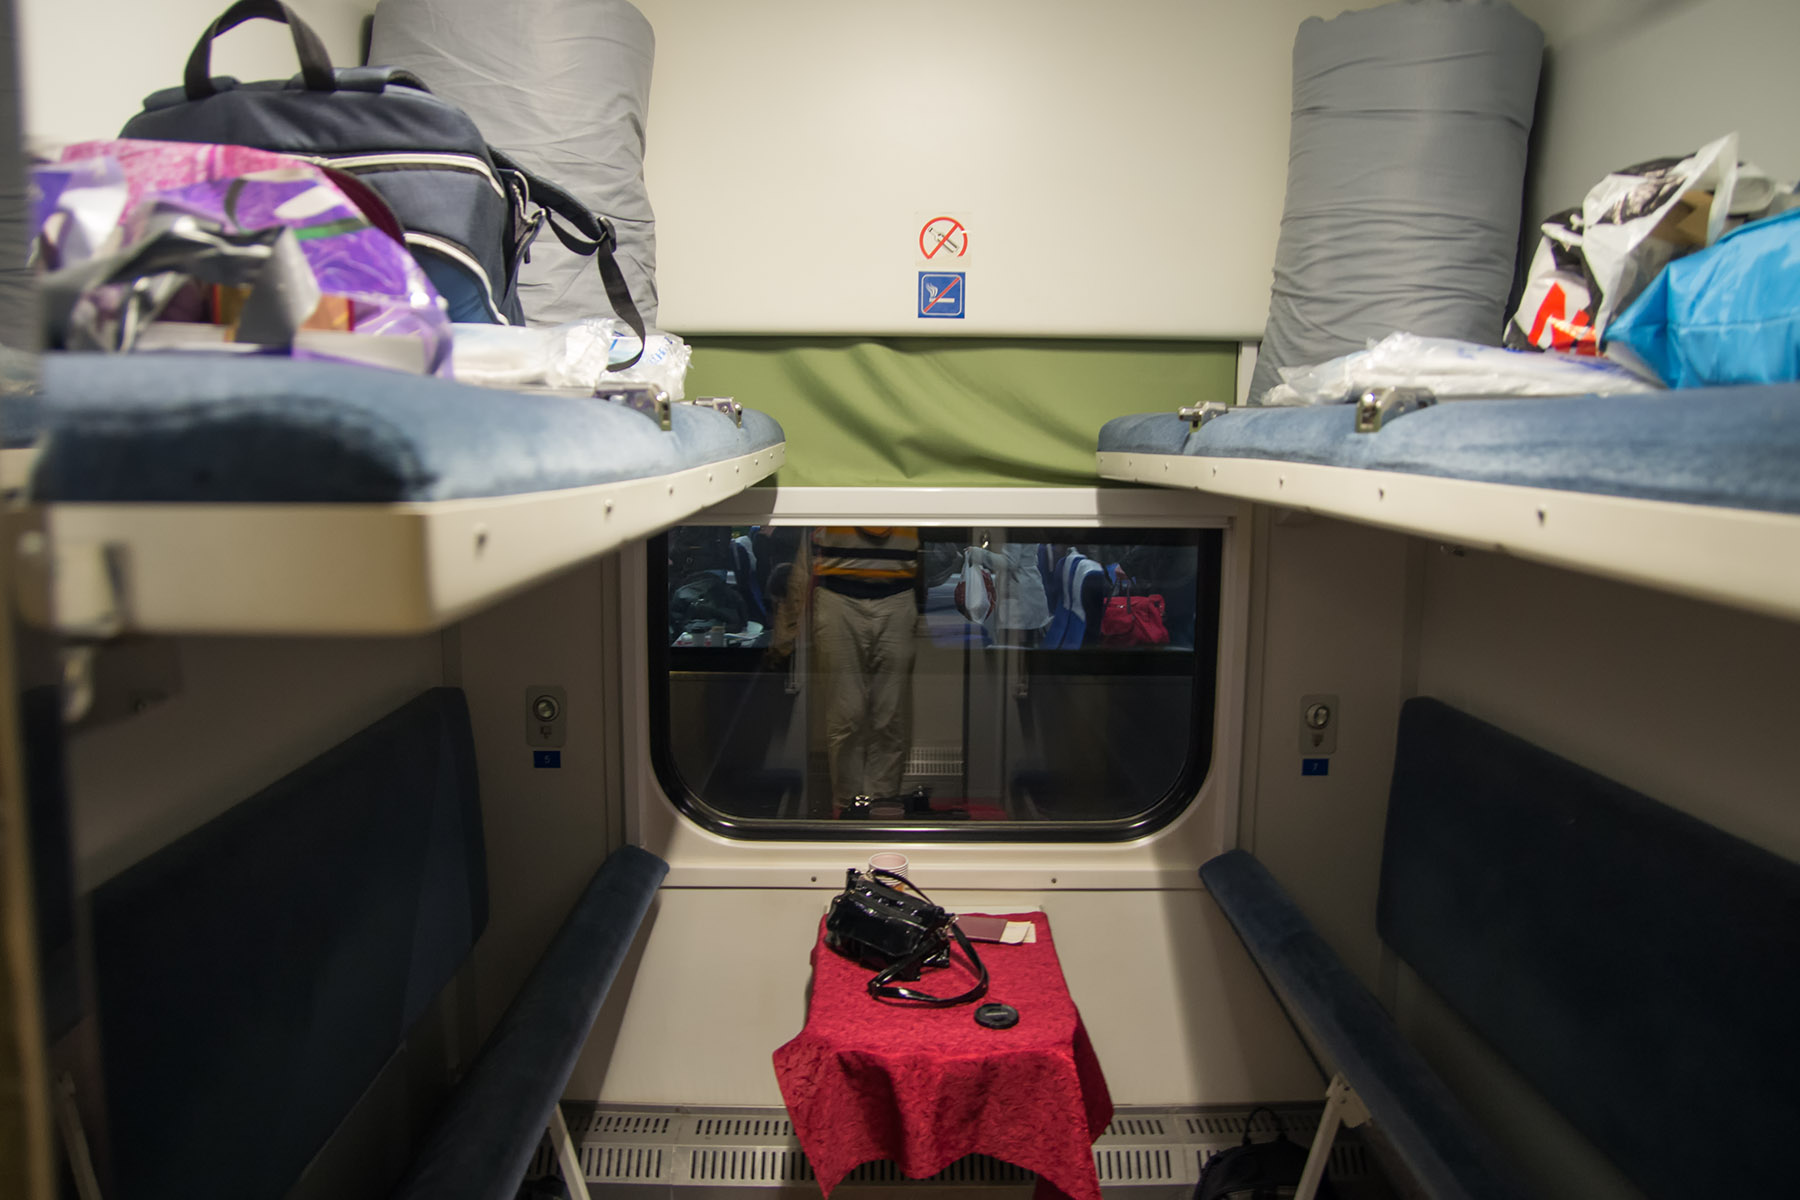 Our sleeping cabin in the train from Kiev to Lviv, Ukraine